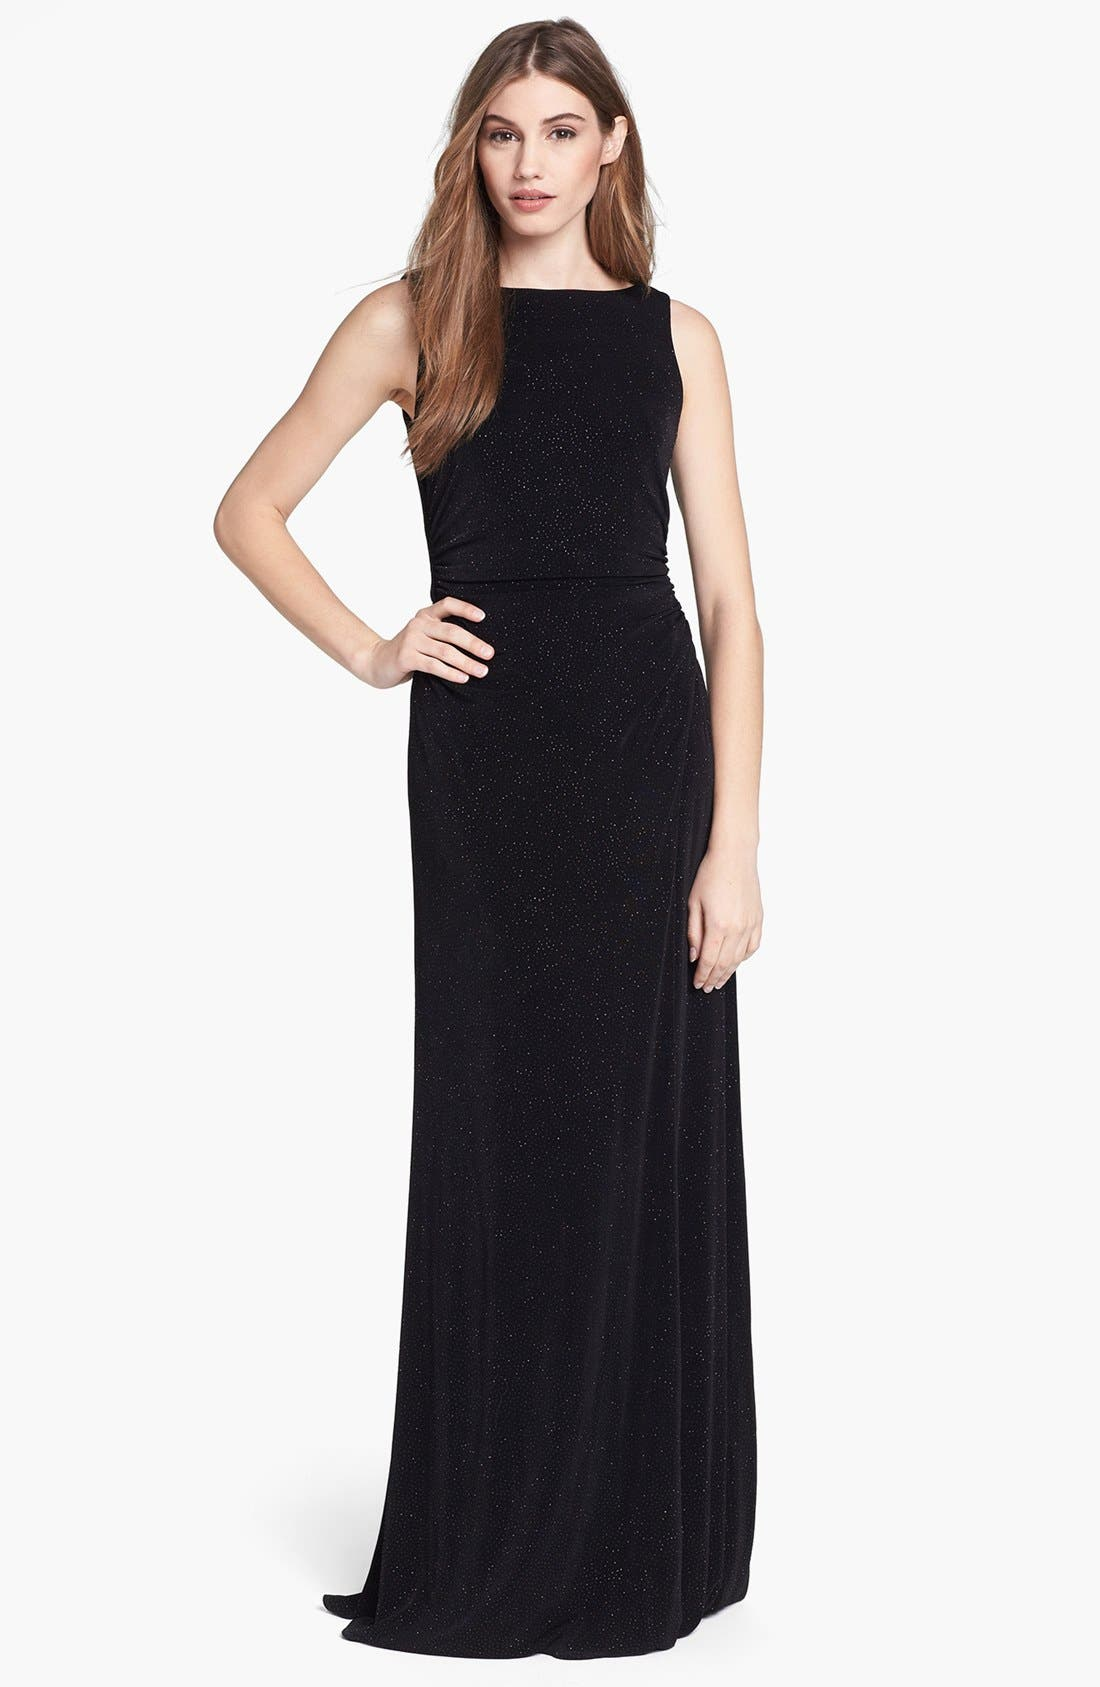 Alternate Image 1 Selected - Laundry by Shelli Segal Embellished Drape Back Gown (Petite)